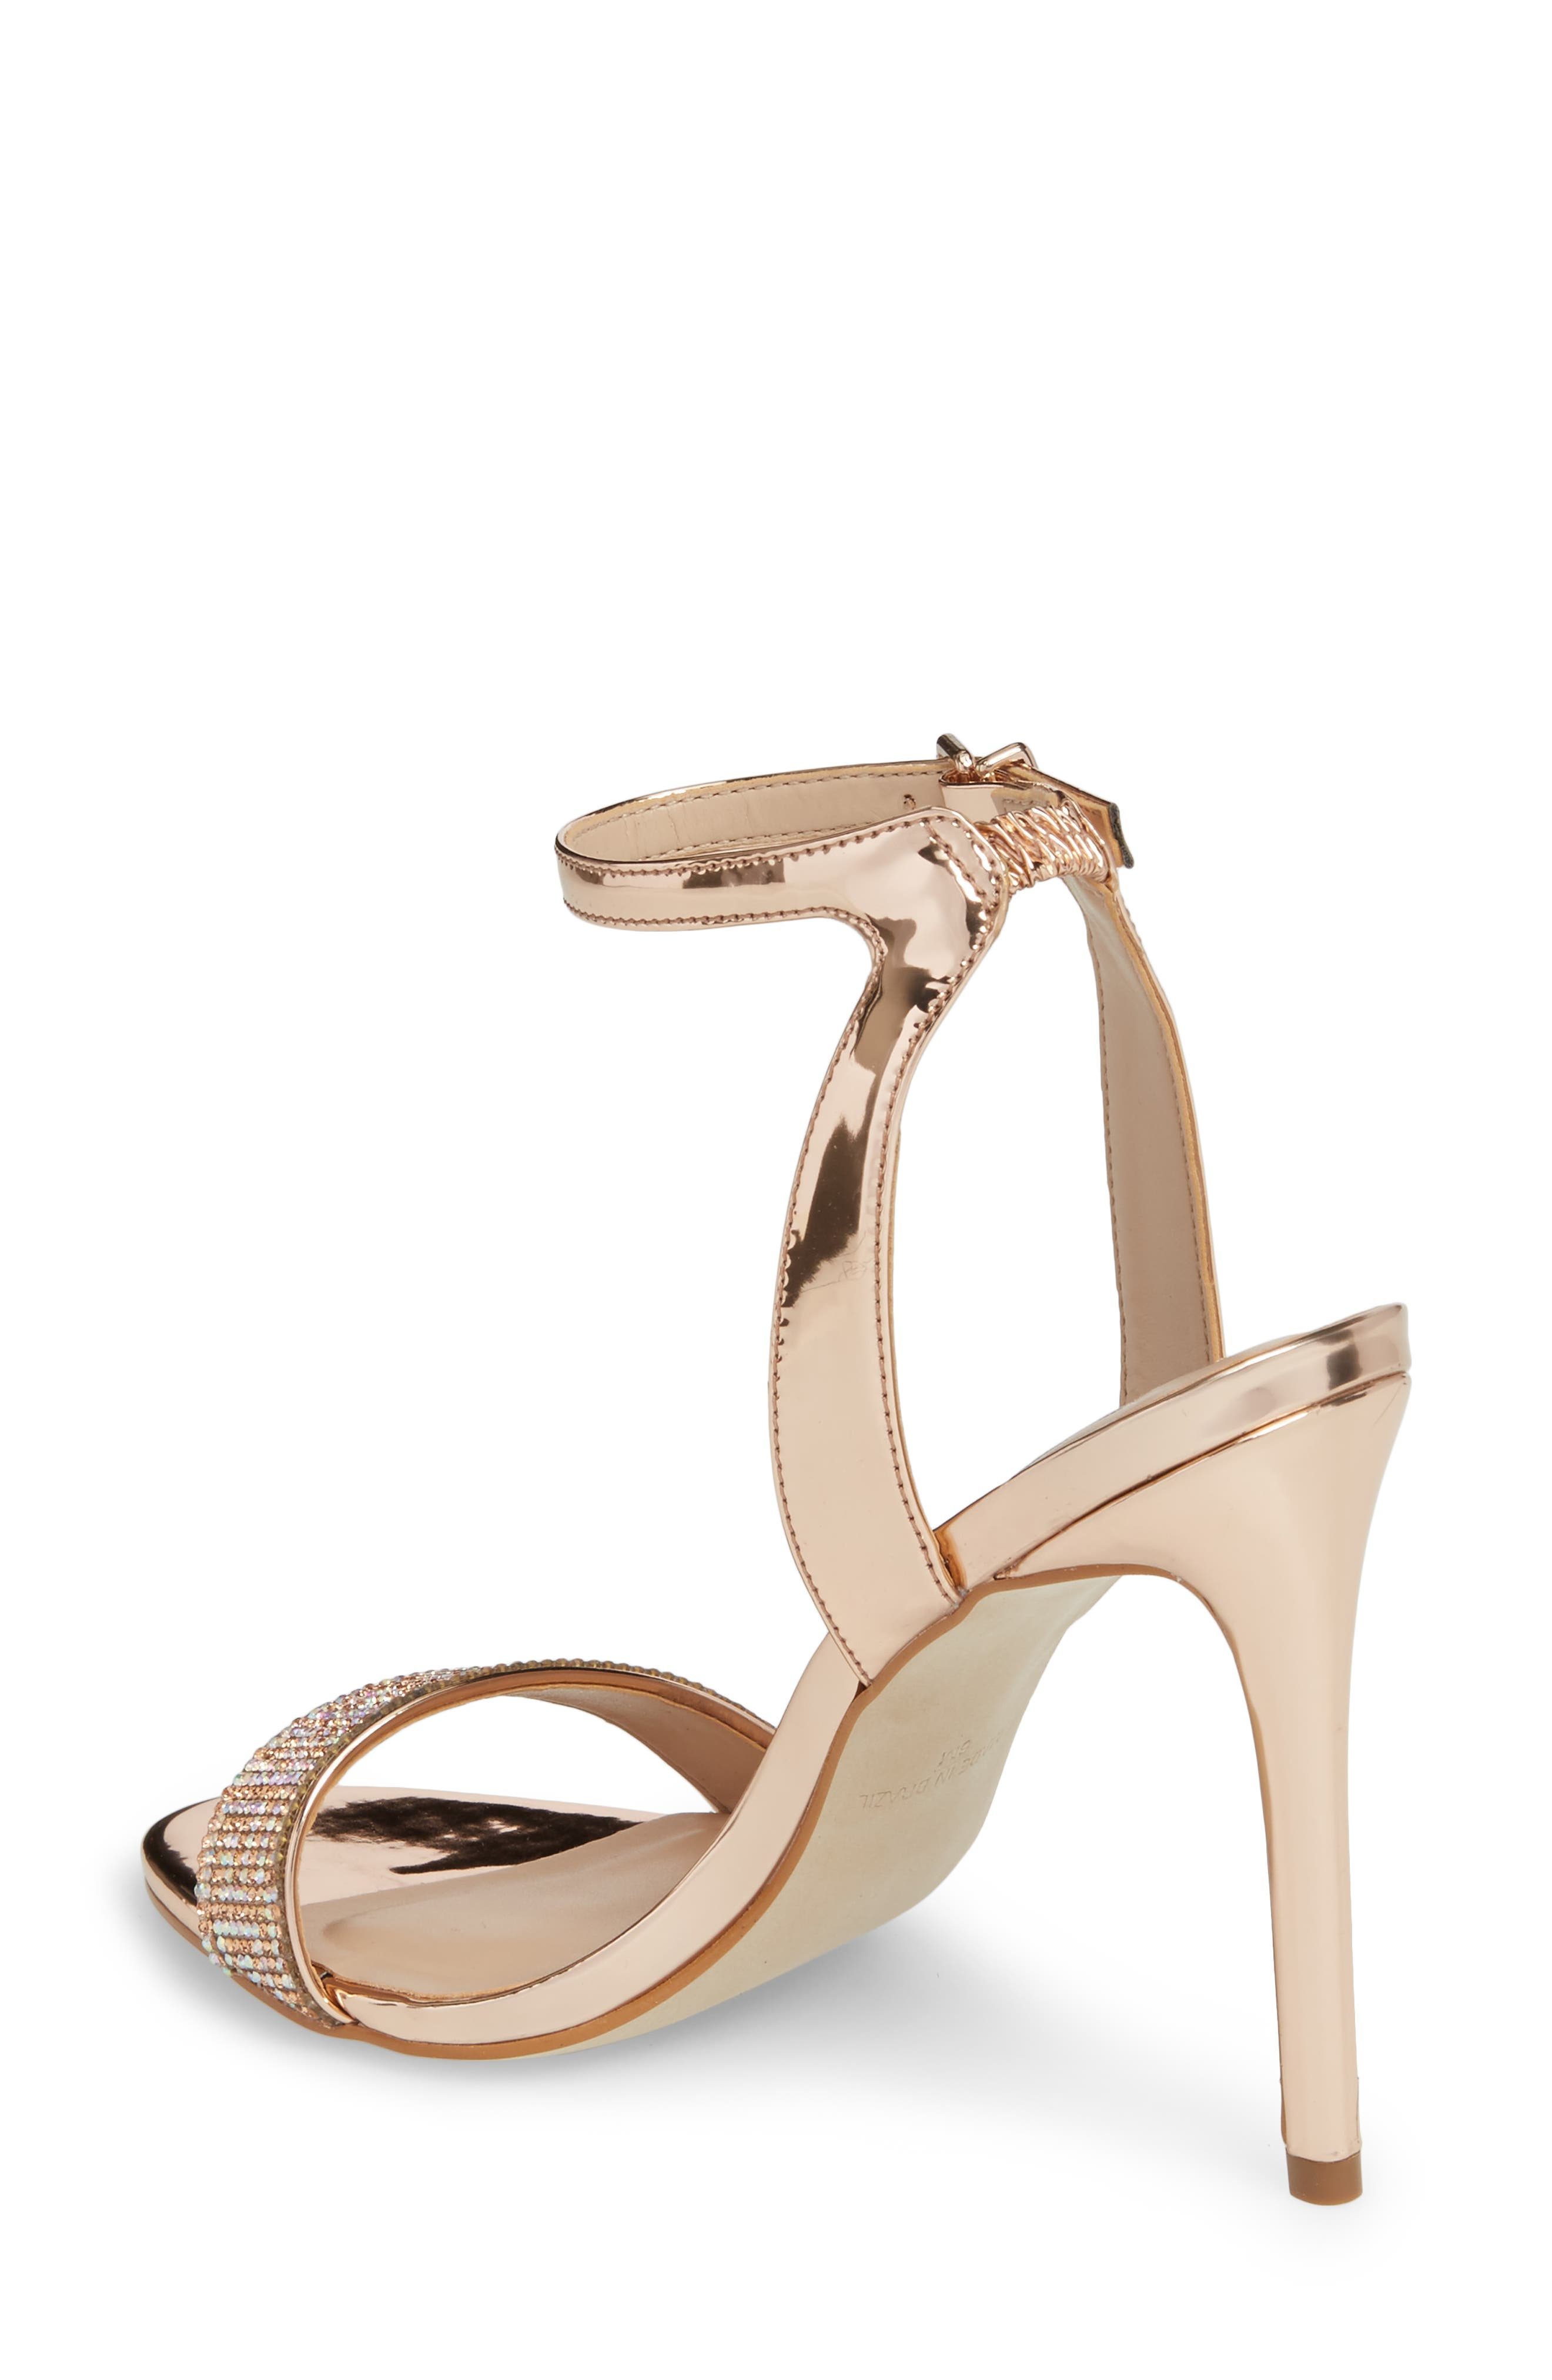 Leona Sandal,                             Alternate thumbnail 2, color,                             Rose Gold Leather